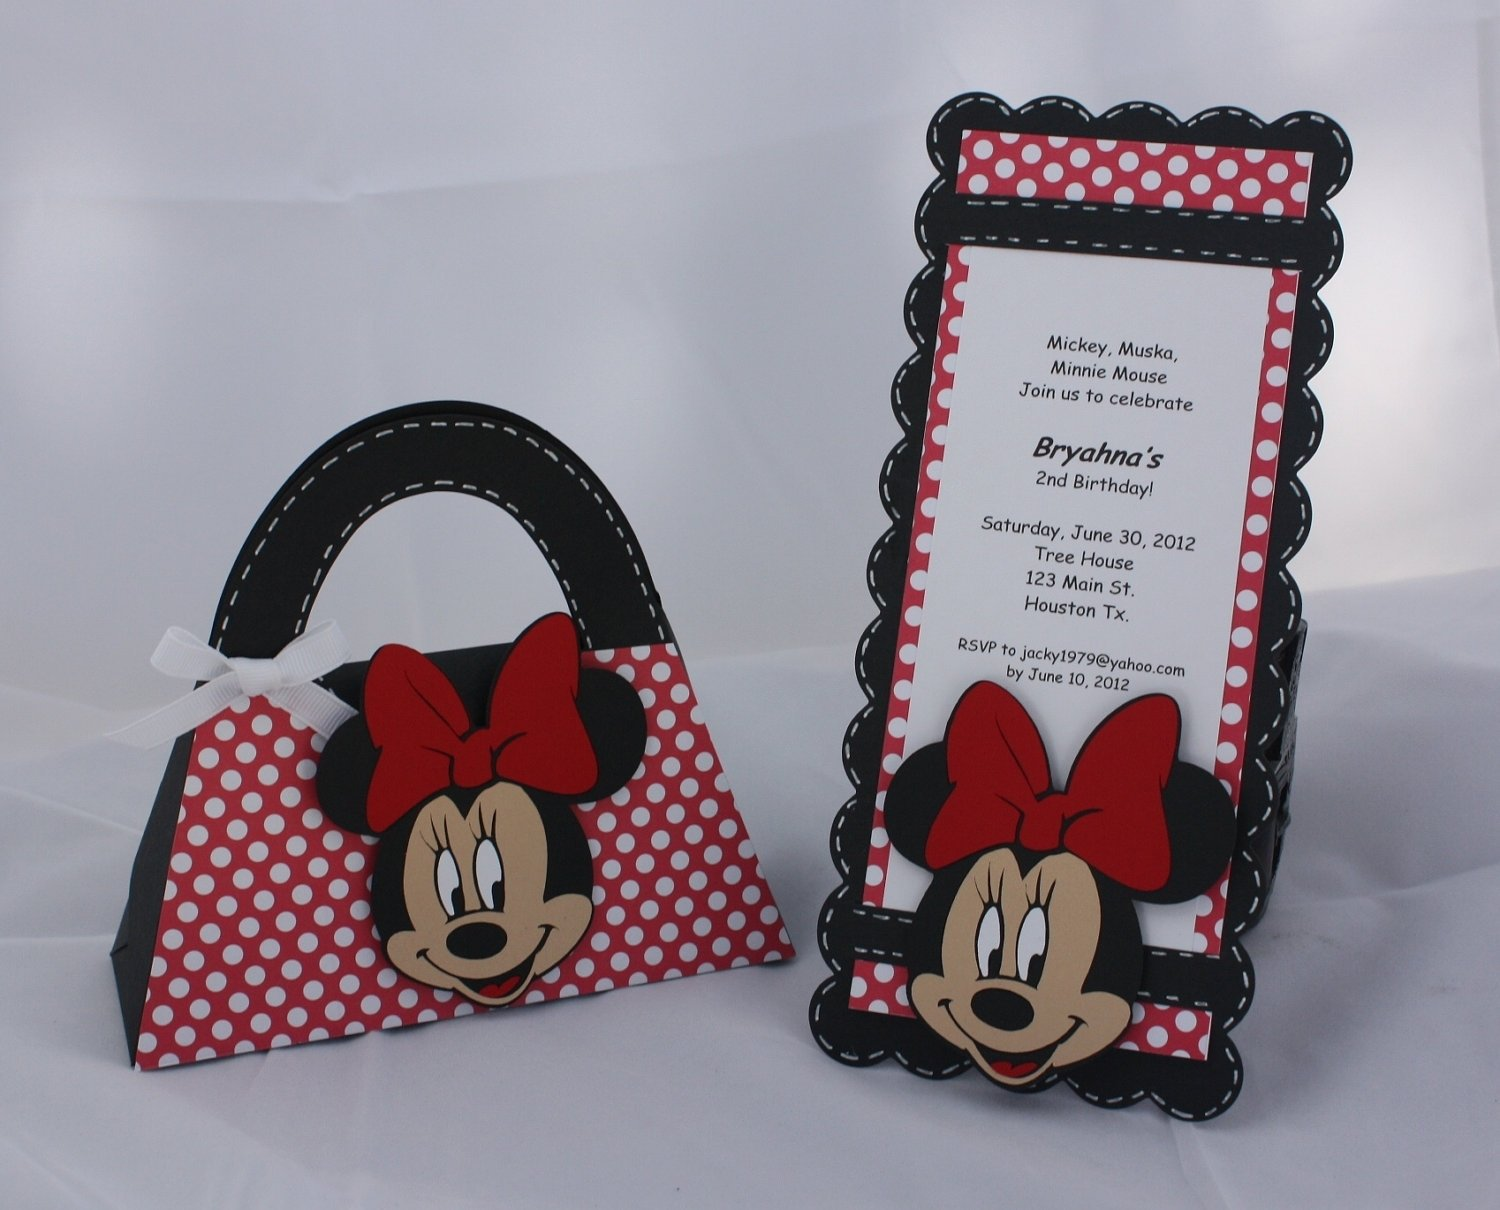 10 Attractive Mickey Mouse Goody Bag Ideas minnie mouse birthday invitations and goody bag set 40 00 via 1 2020